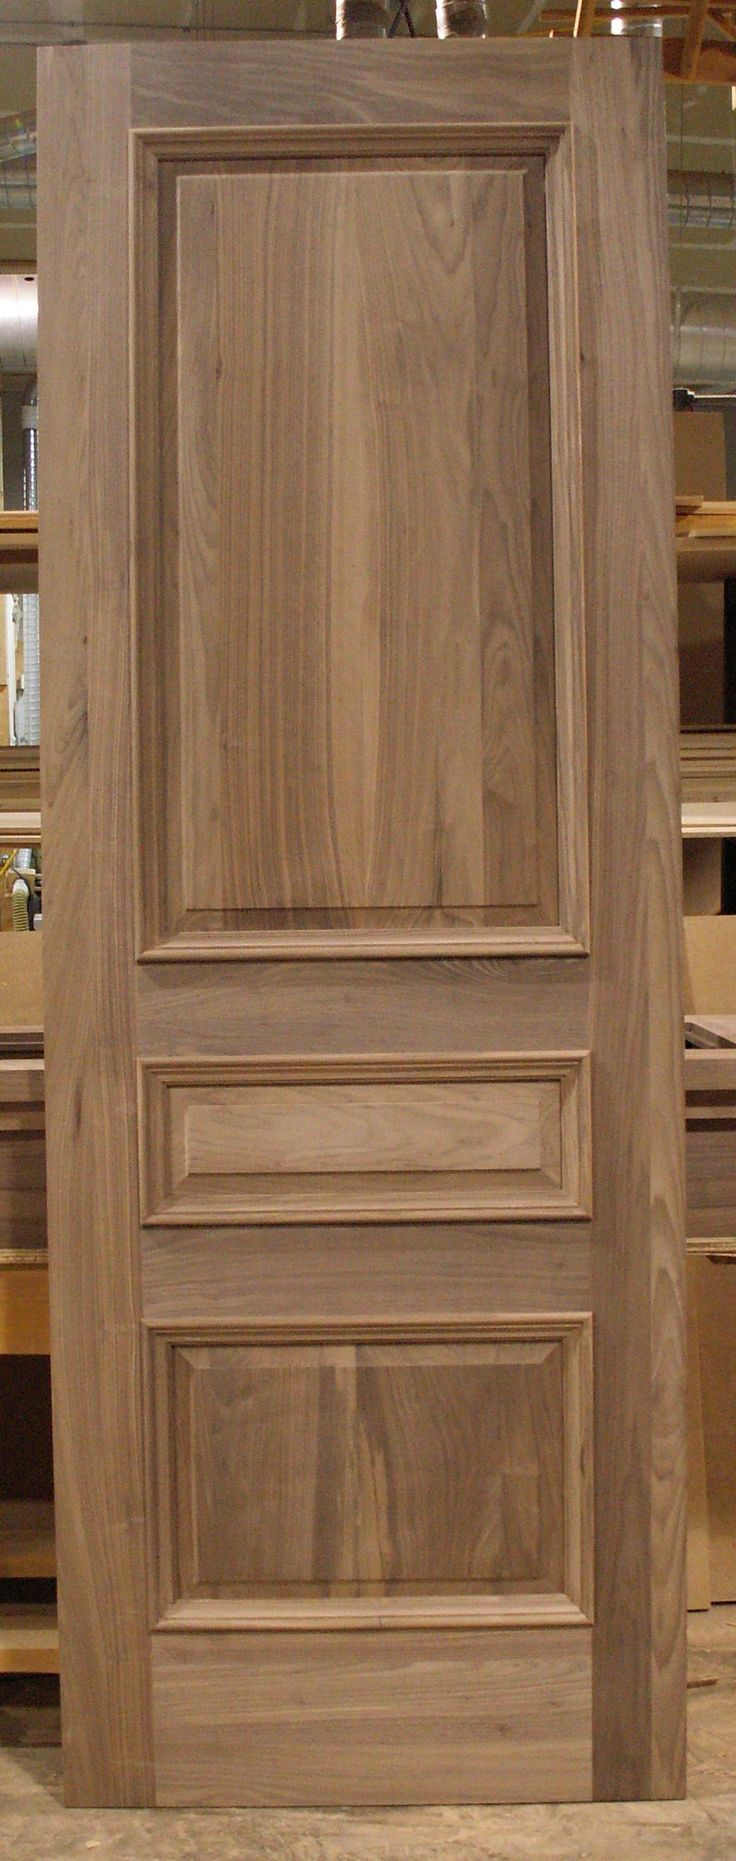 Solid Walnut door, 3 panel with raised panels and applied moulding.